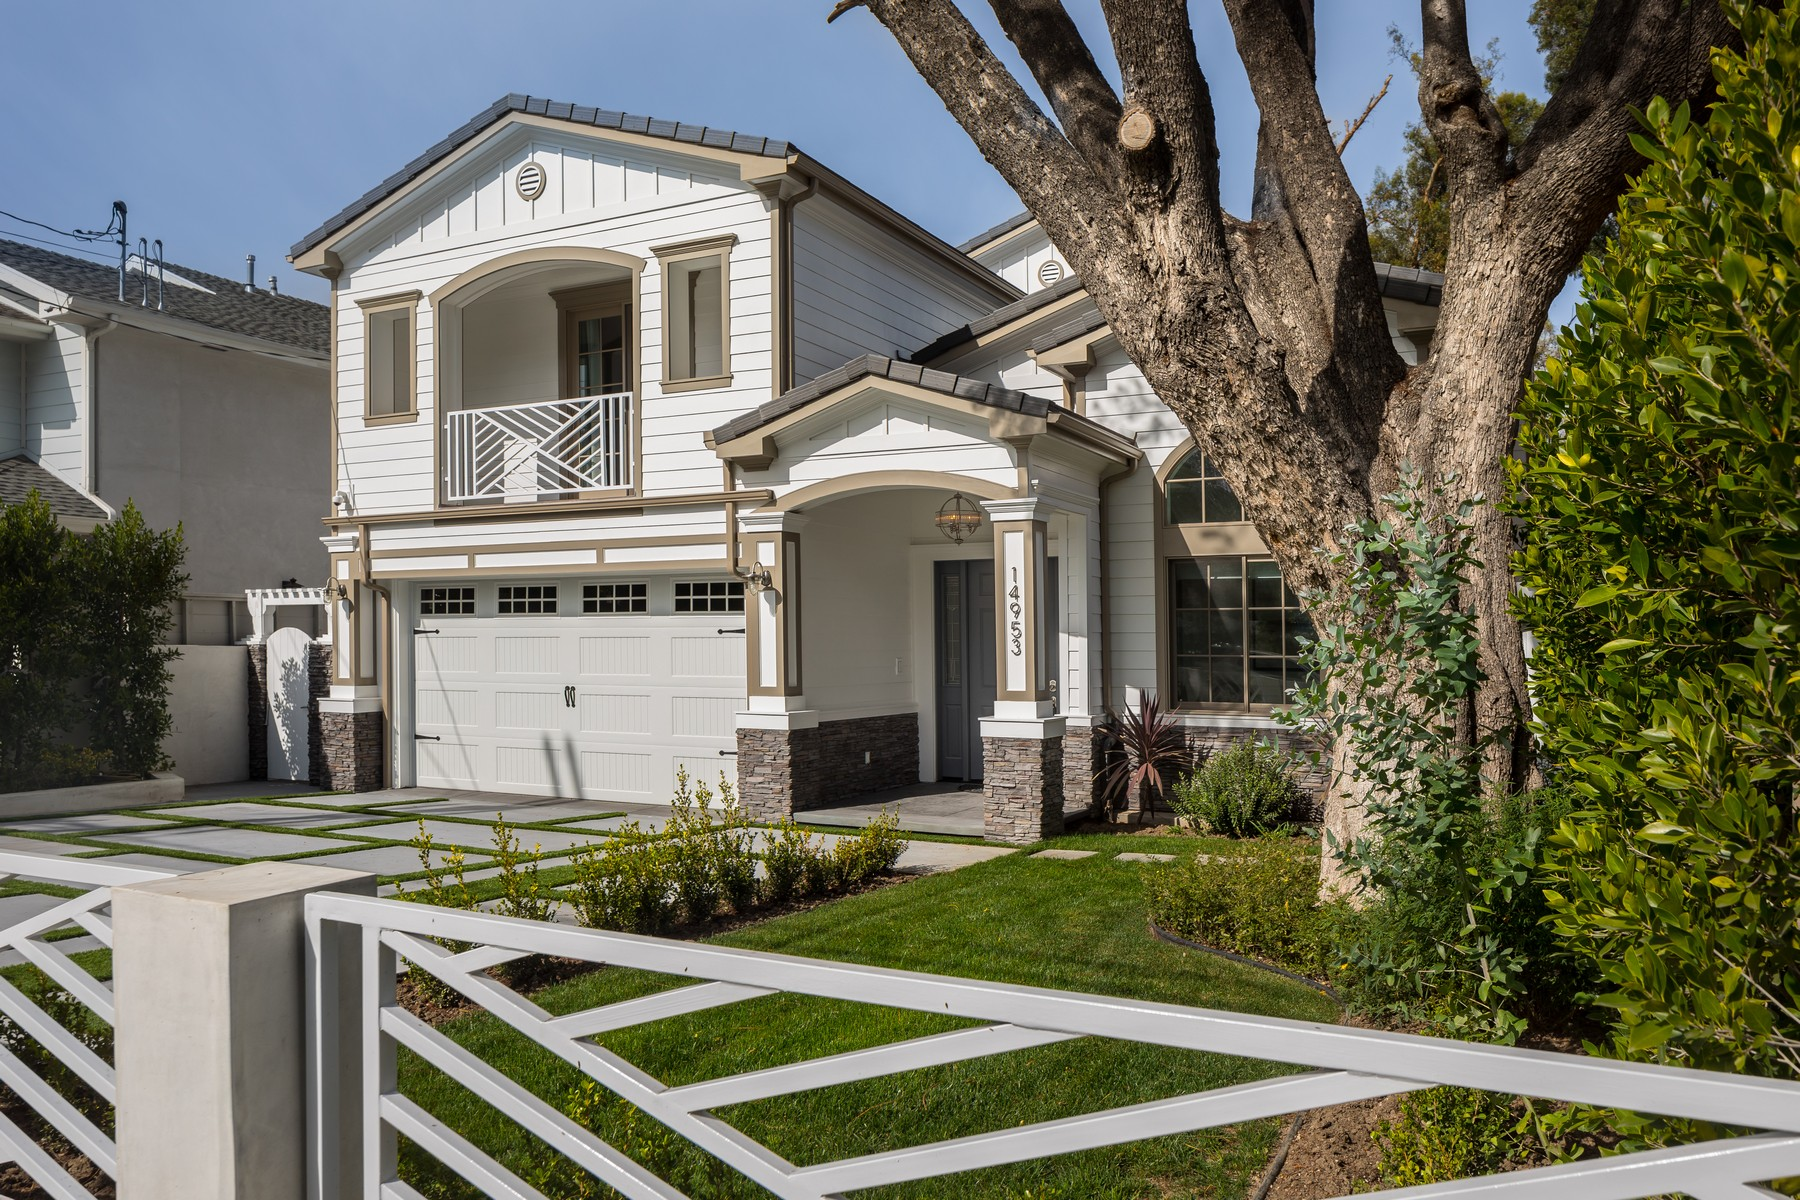 Single Family Home for Sale at 14953 Sutton St Sherman Oaks, California 91403 United States